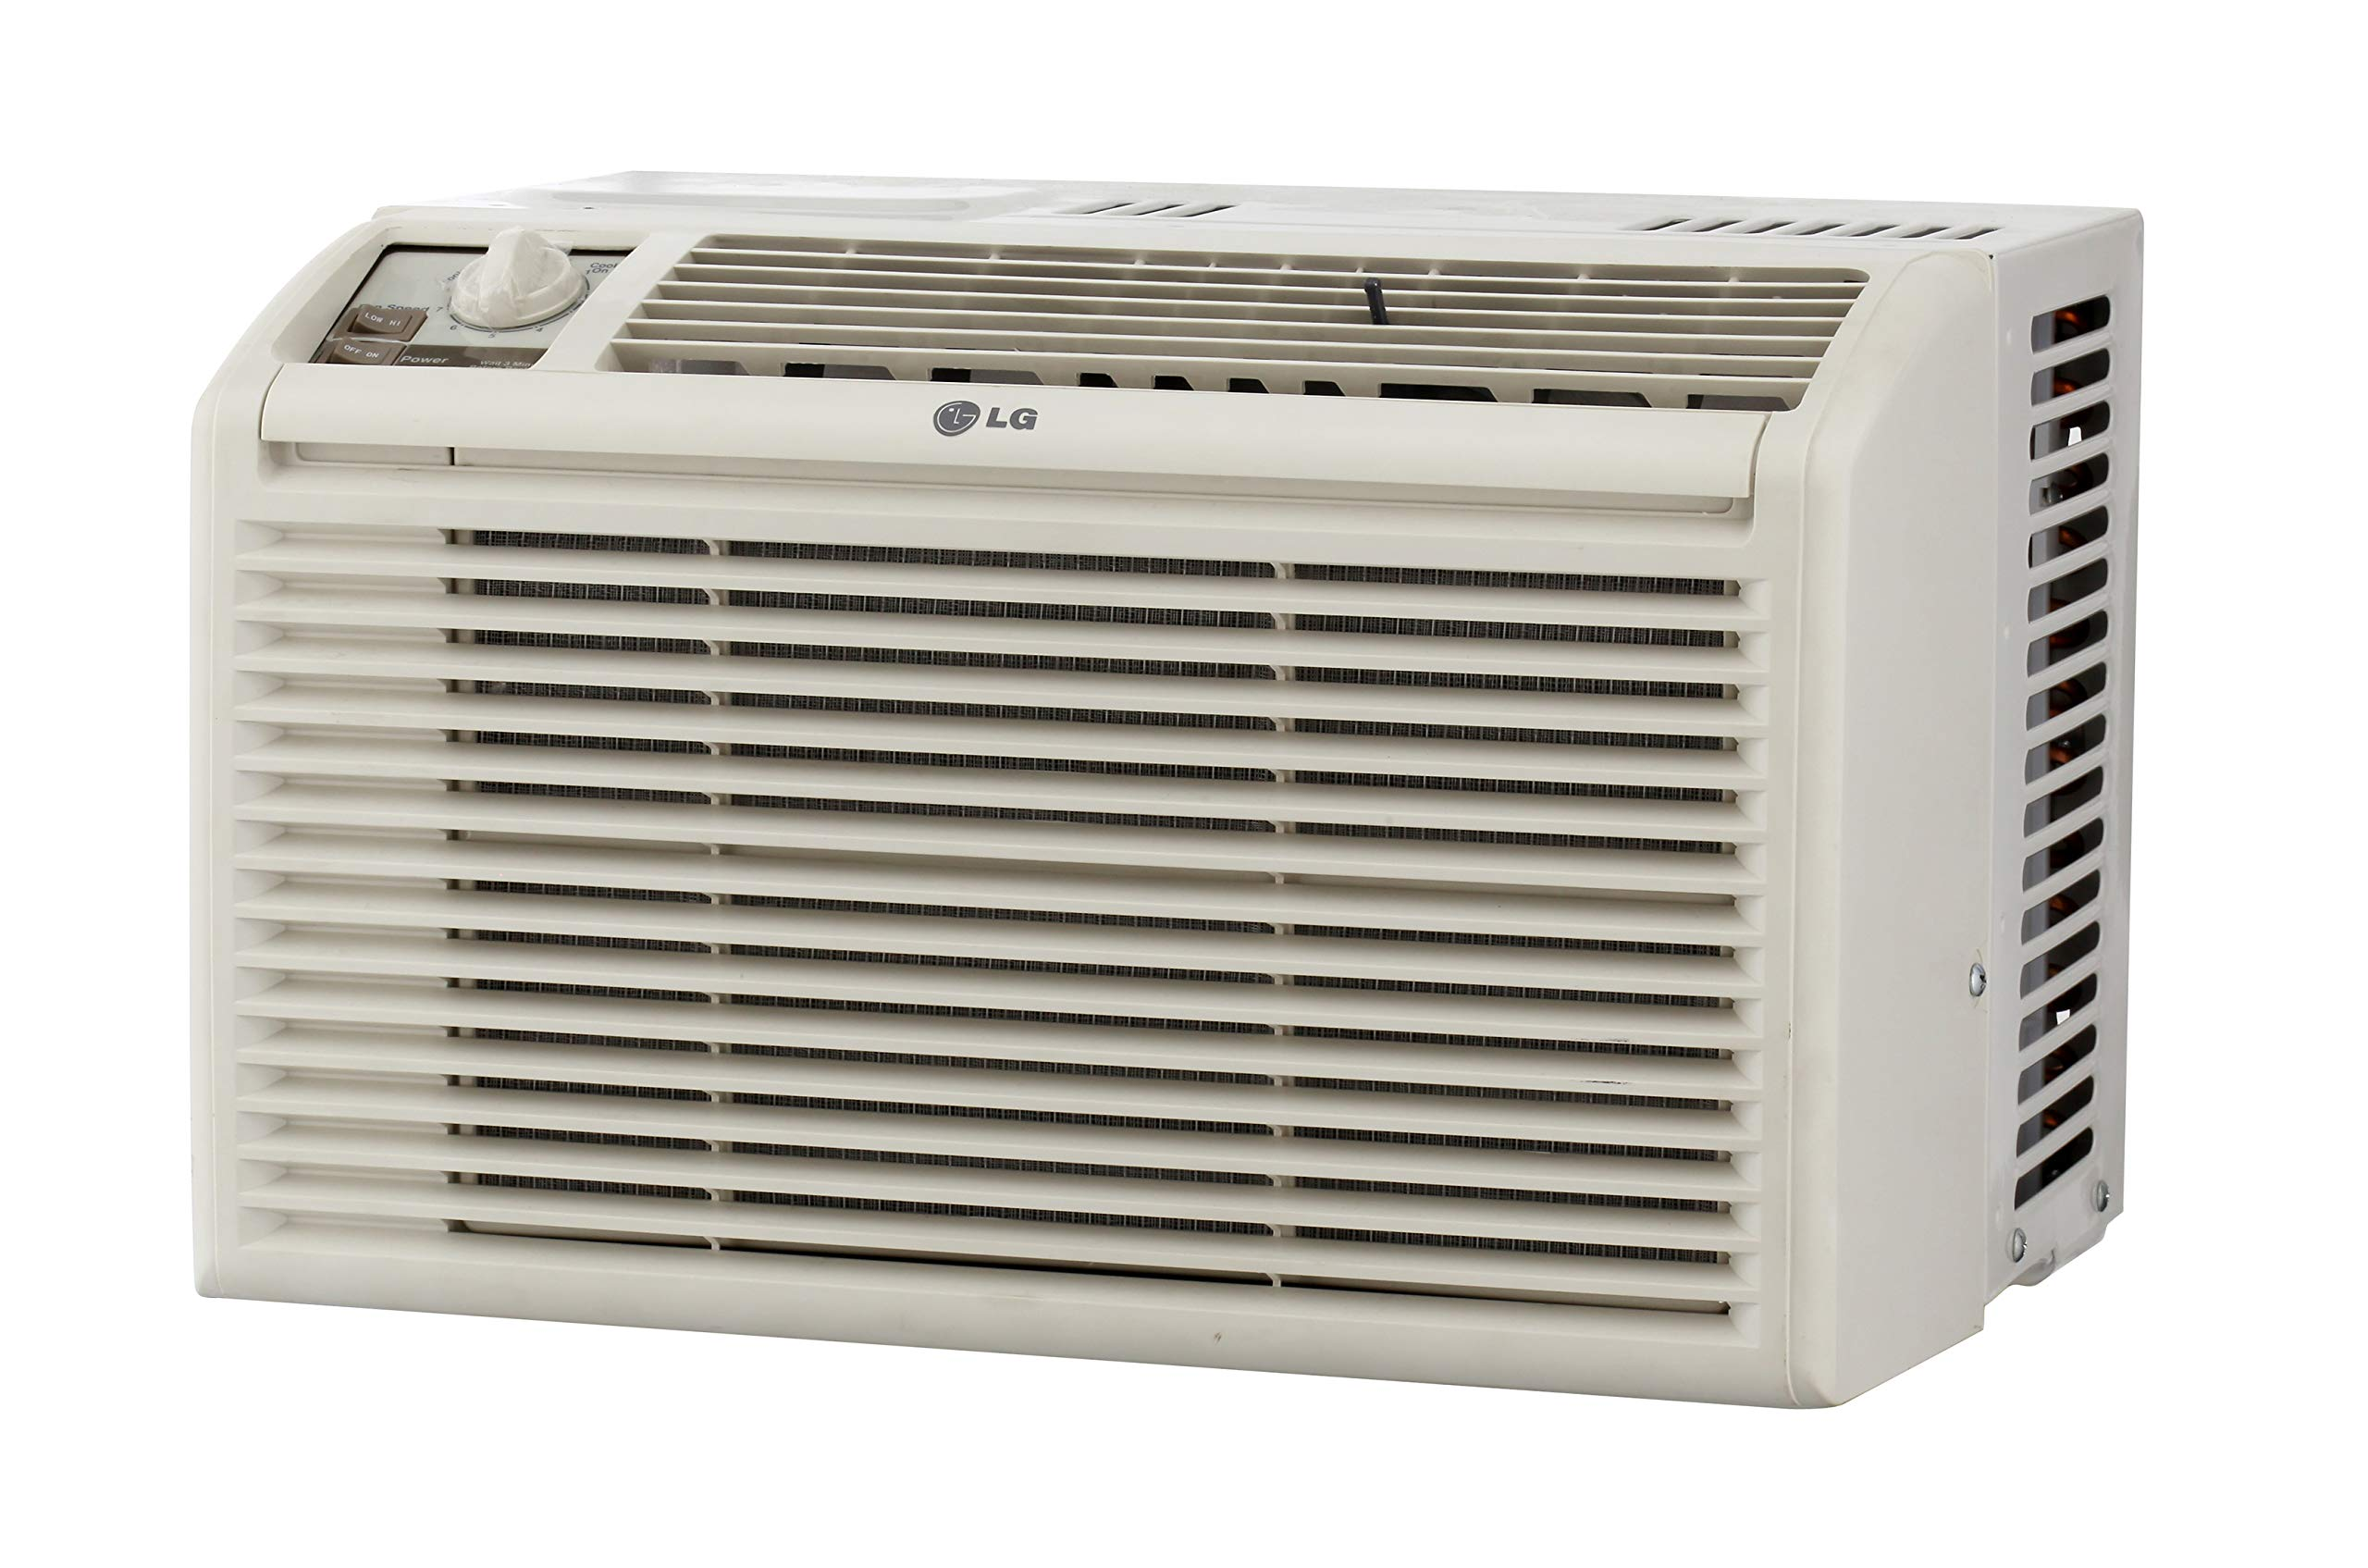 LG 5,000 BTU Manual Controls Window Air Conditioner White by LG